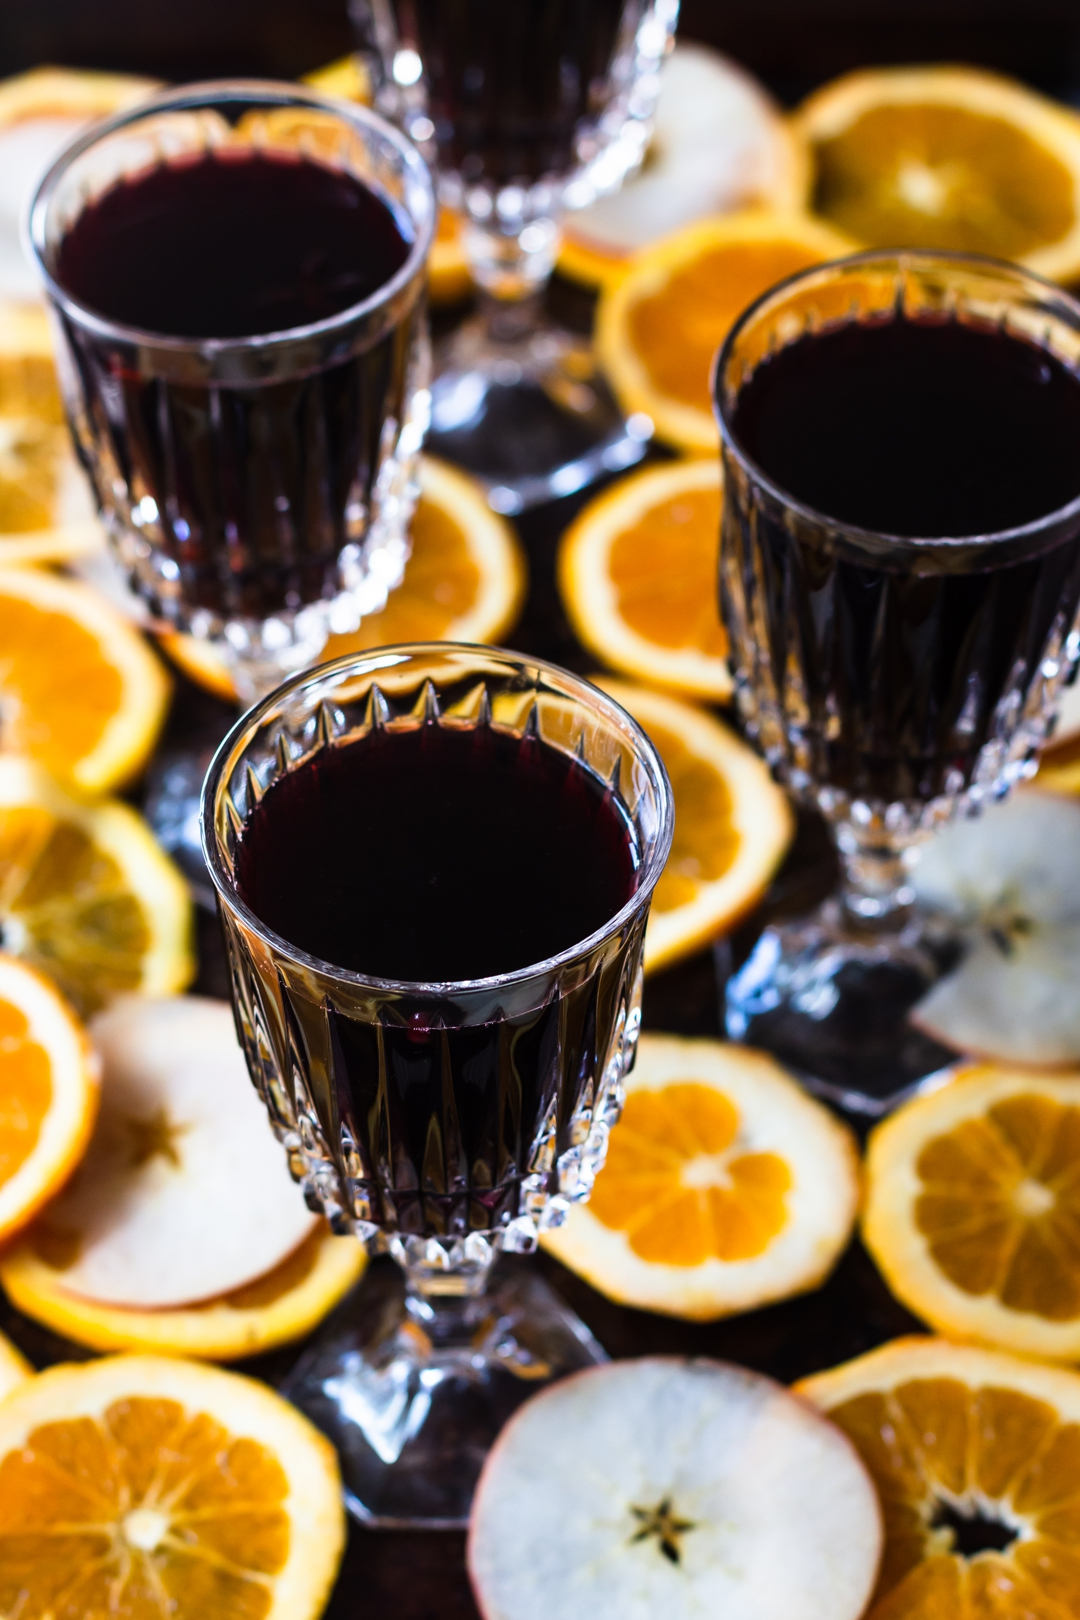 45 degree shot of mulled wine filled glasses surrounded by orange and apple slices.